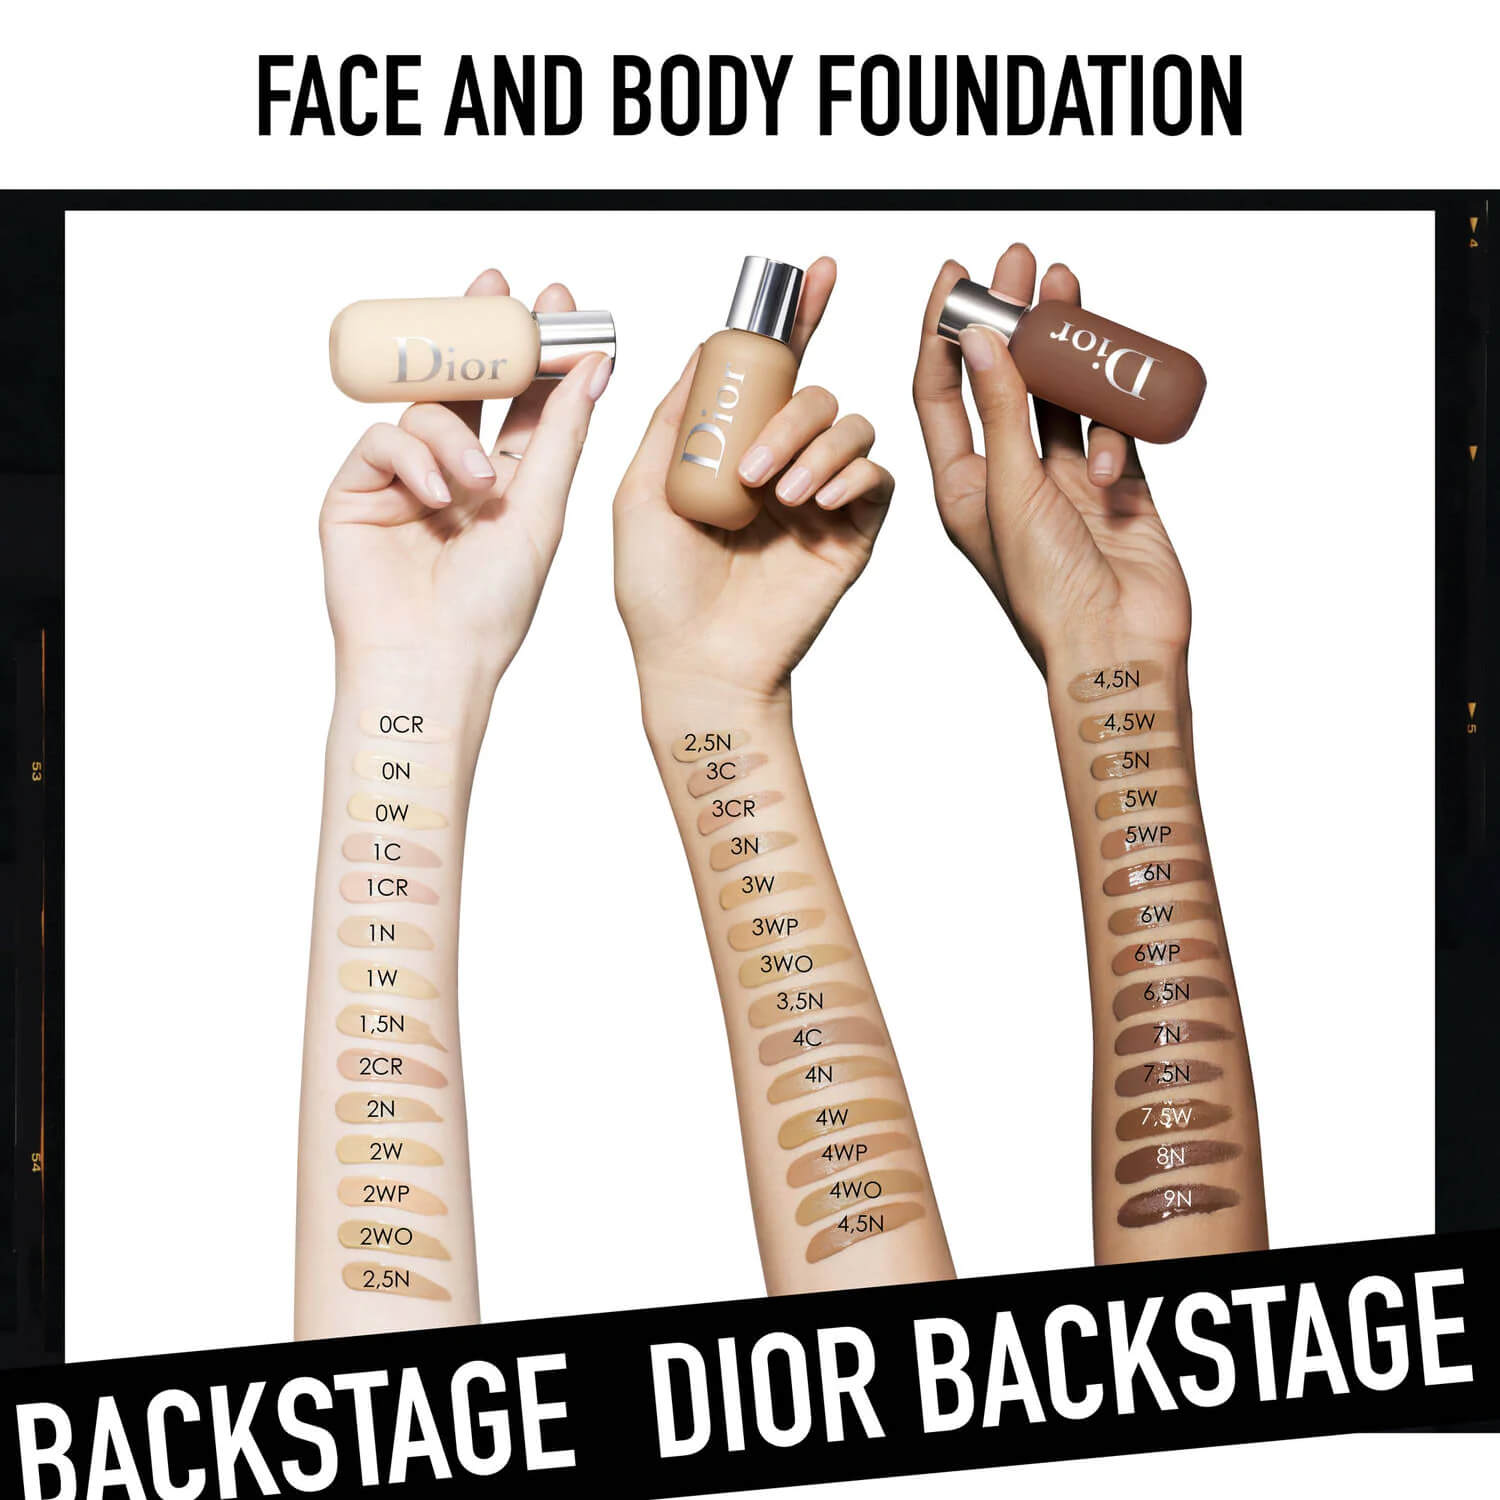 revue-review-fond-de-teint-visage-corps-dior-backstage-face-foundation-avis-prix-swatch-makeupbyazadig-teintes